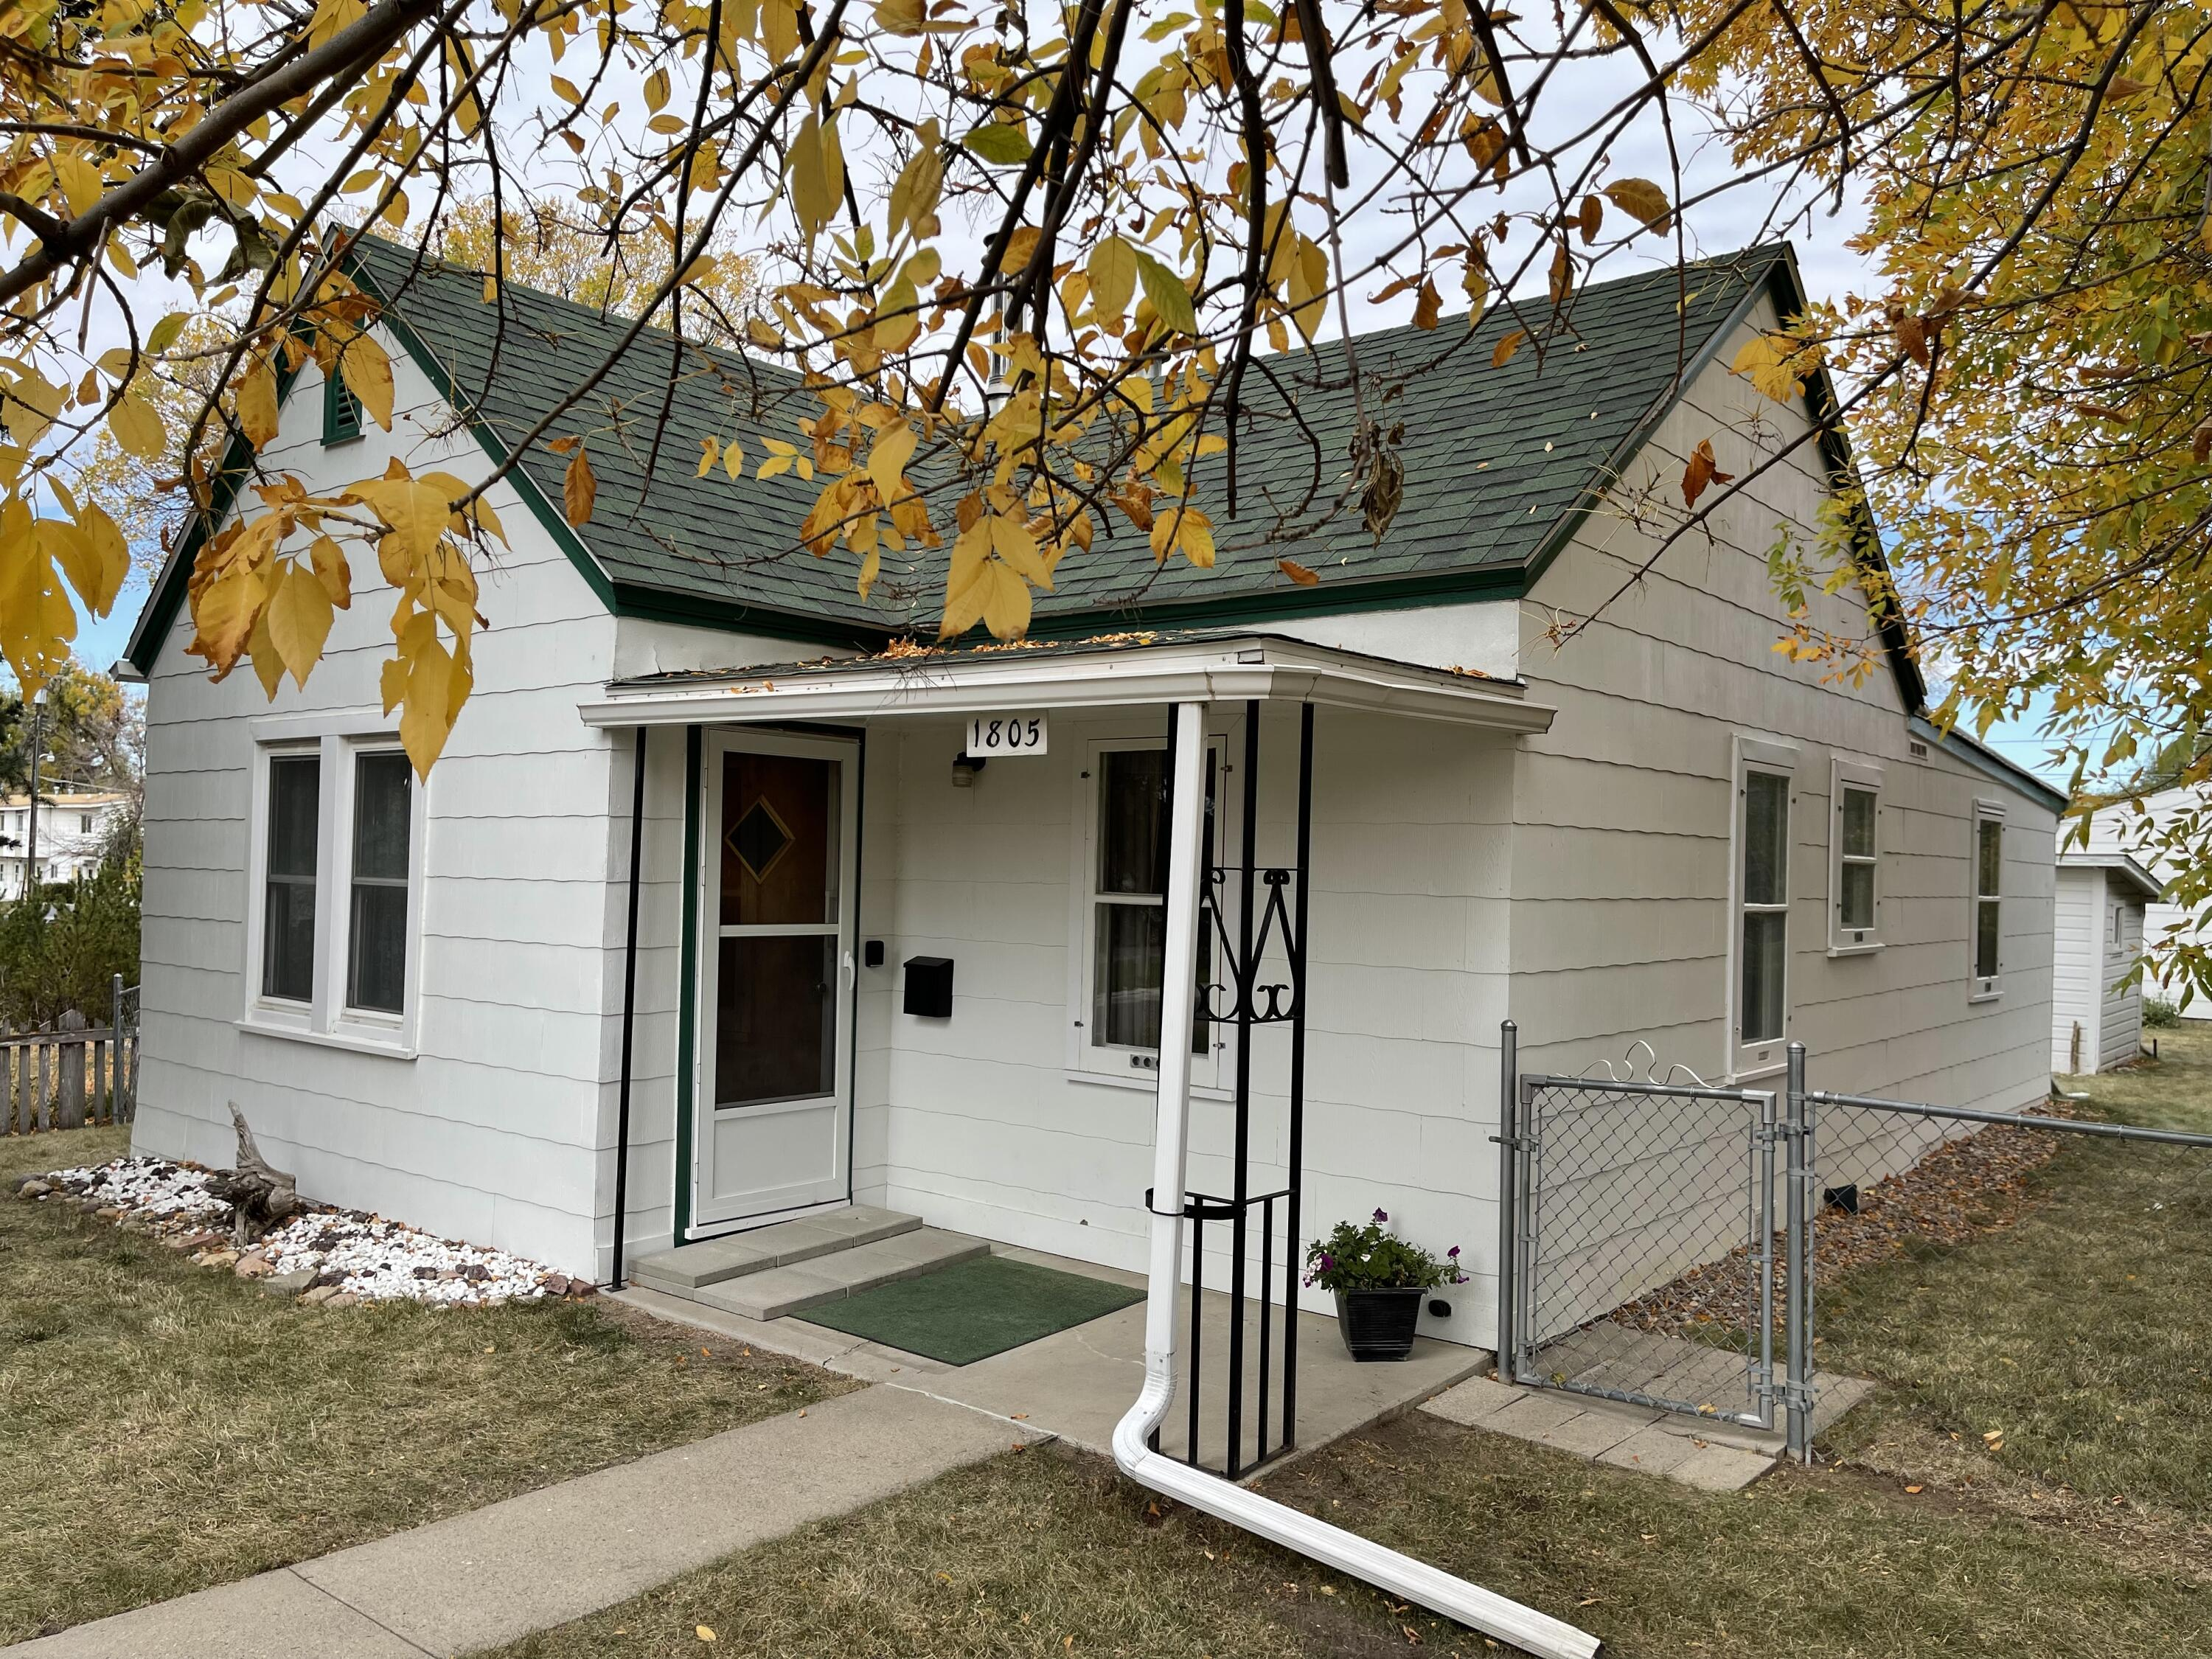 TINY LIVING AT IT'S BEST WITHOUT GIVING UP ALL THE EXTRA AMENITIES! Great fenced yard with mature landscaping, gardening shed, clothes line, RV parking, and oversized two stall garage with alley access. Well taken care of by owner for over 40 years. Property is being sold as is BUT please do your inspection to find out all you are getting at such a great price.